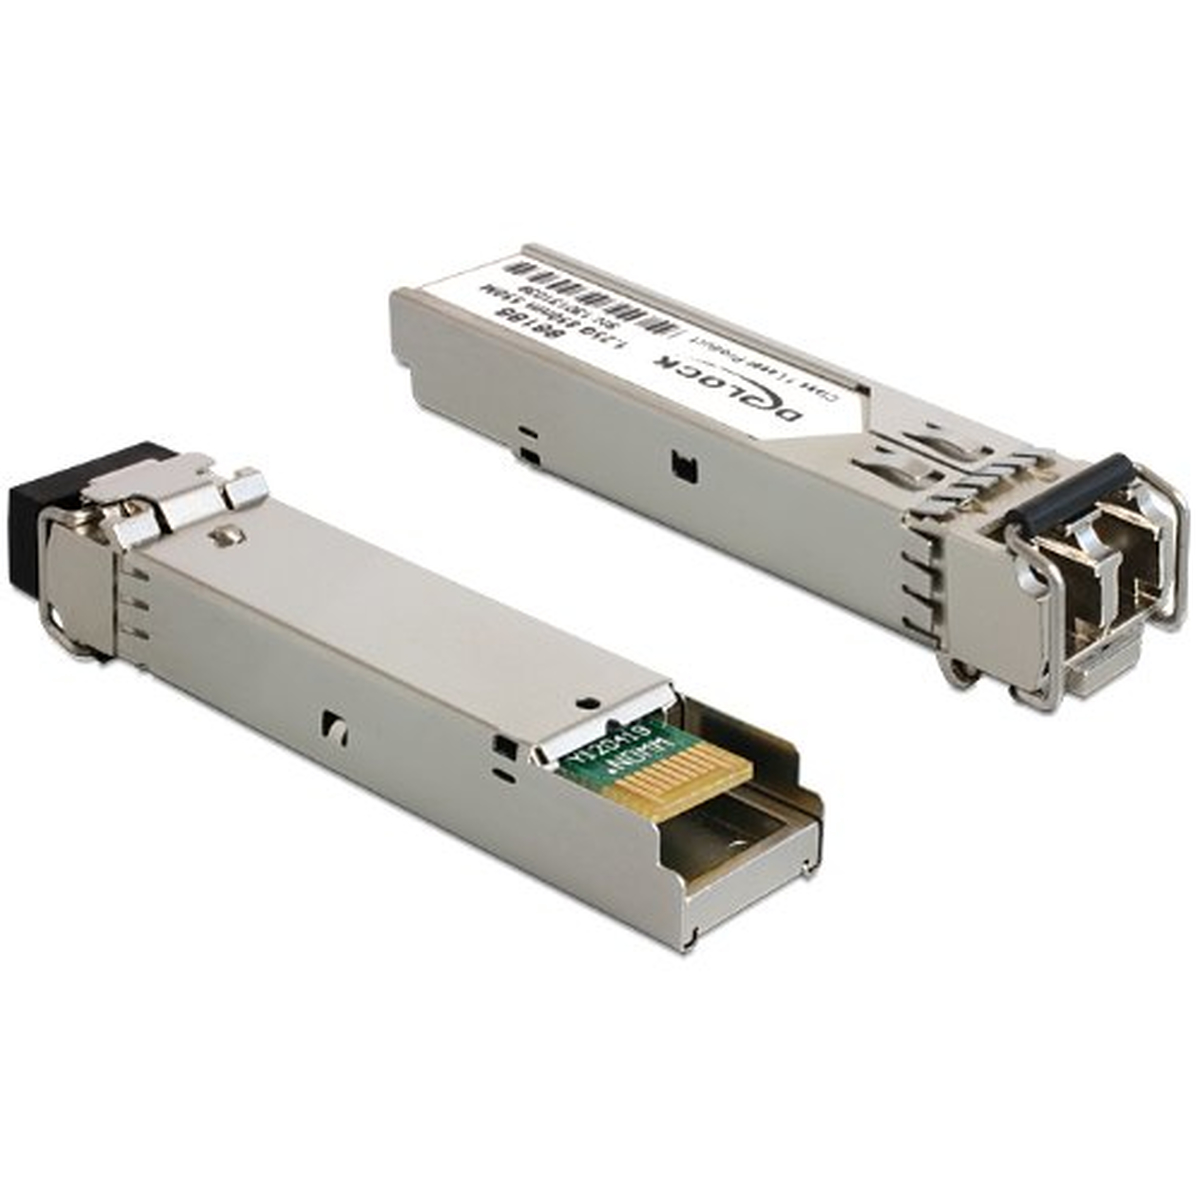 DeLOCK SFP-Modul 1000Base-SX MM 850 nm